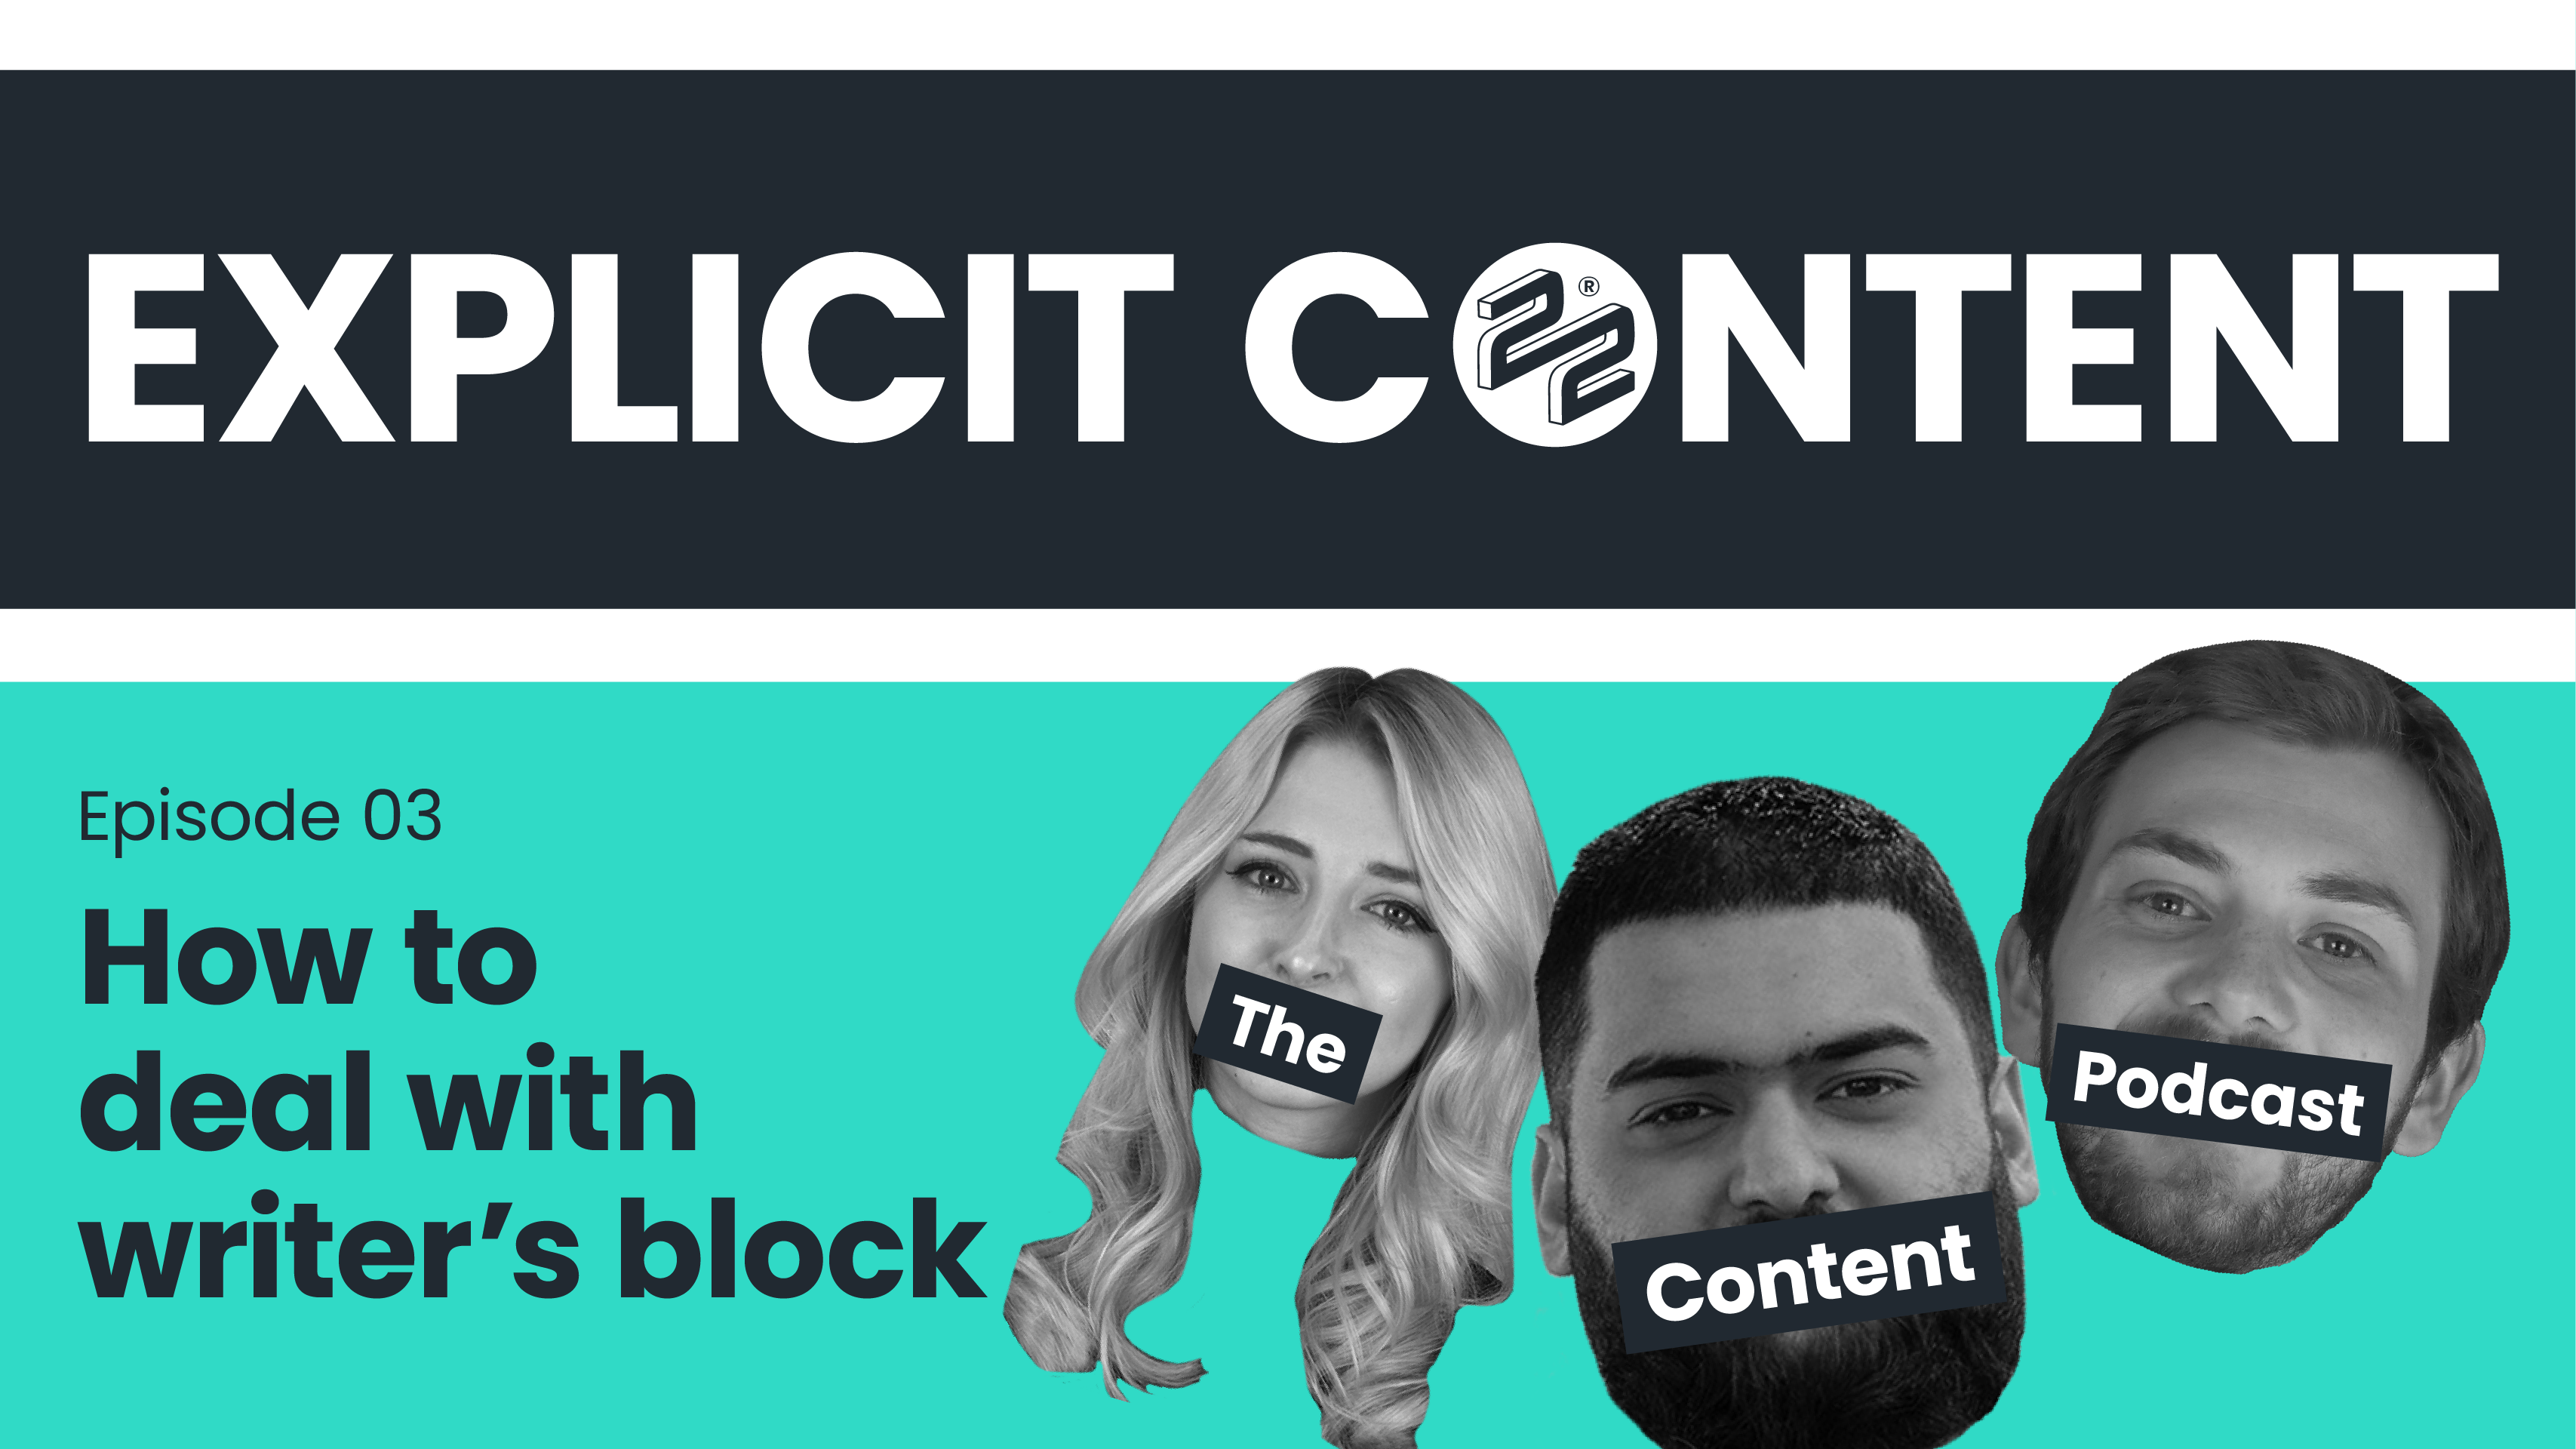 EXPLICIT CONTENT: How to deal with writer's block